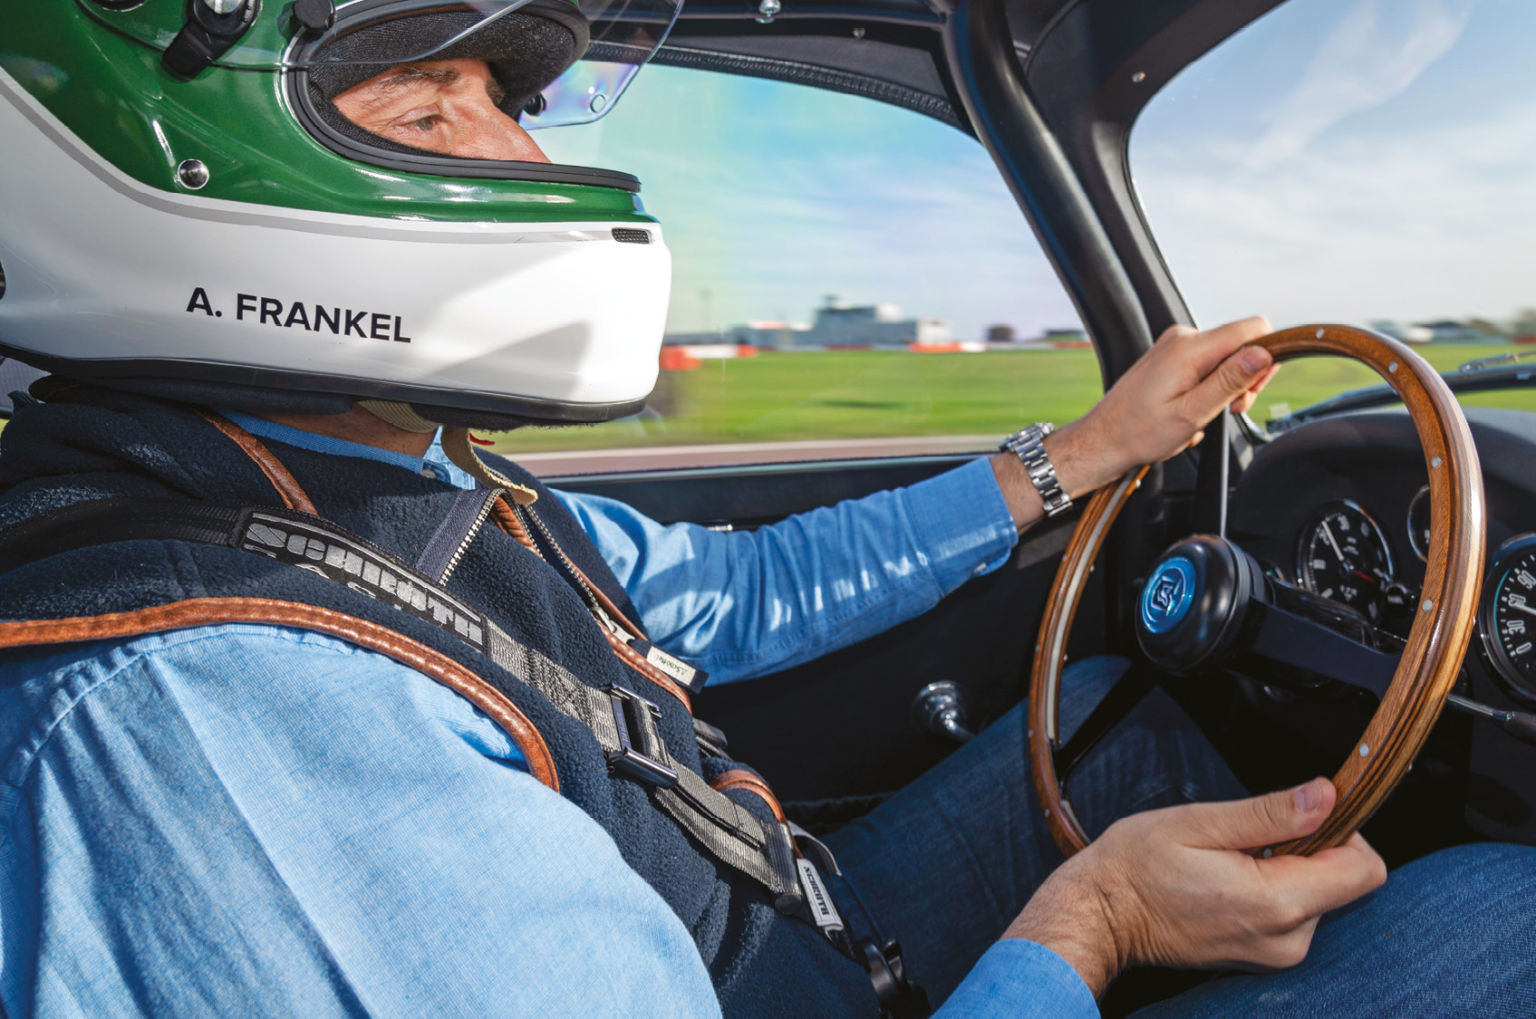 Frankel gets a feel for the 'new' old Aston Zagato